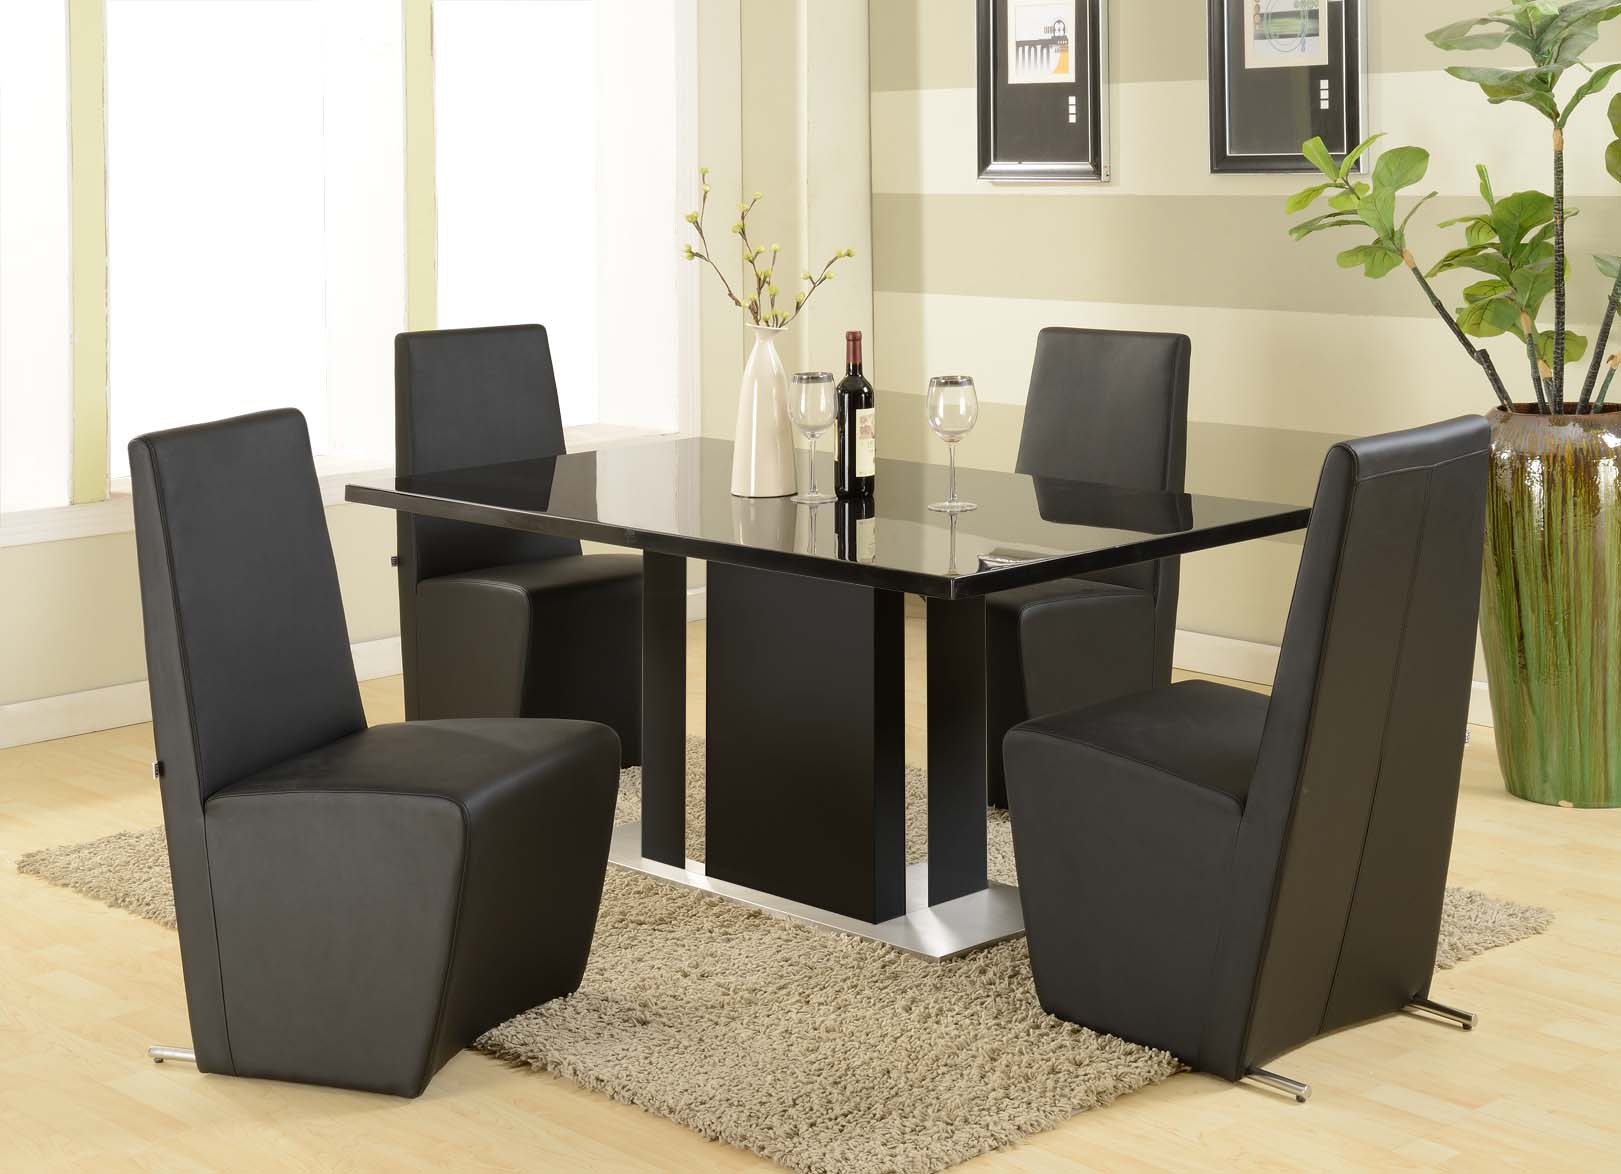 Modern Furniture Table Home Design Roosa : gavino italia ultra modern black marble dining table 6 dining chair set 9889 p from roosatelier.blogspot.com size 1621 x 1174 jpeg 155kB